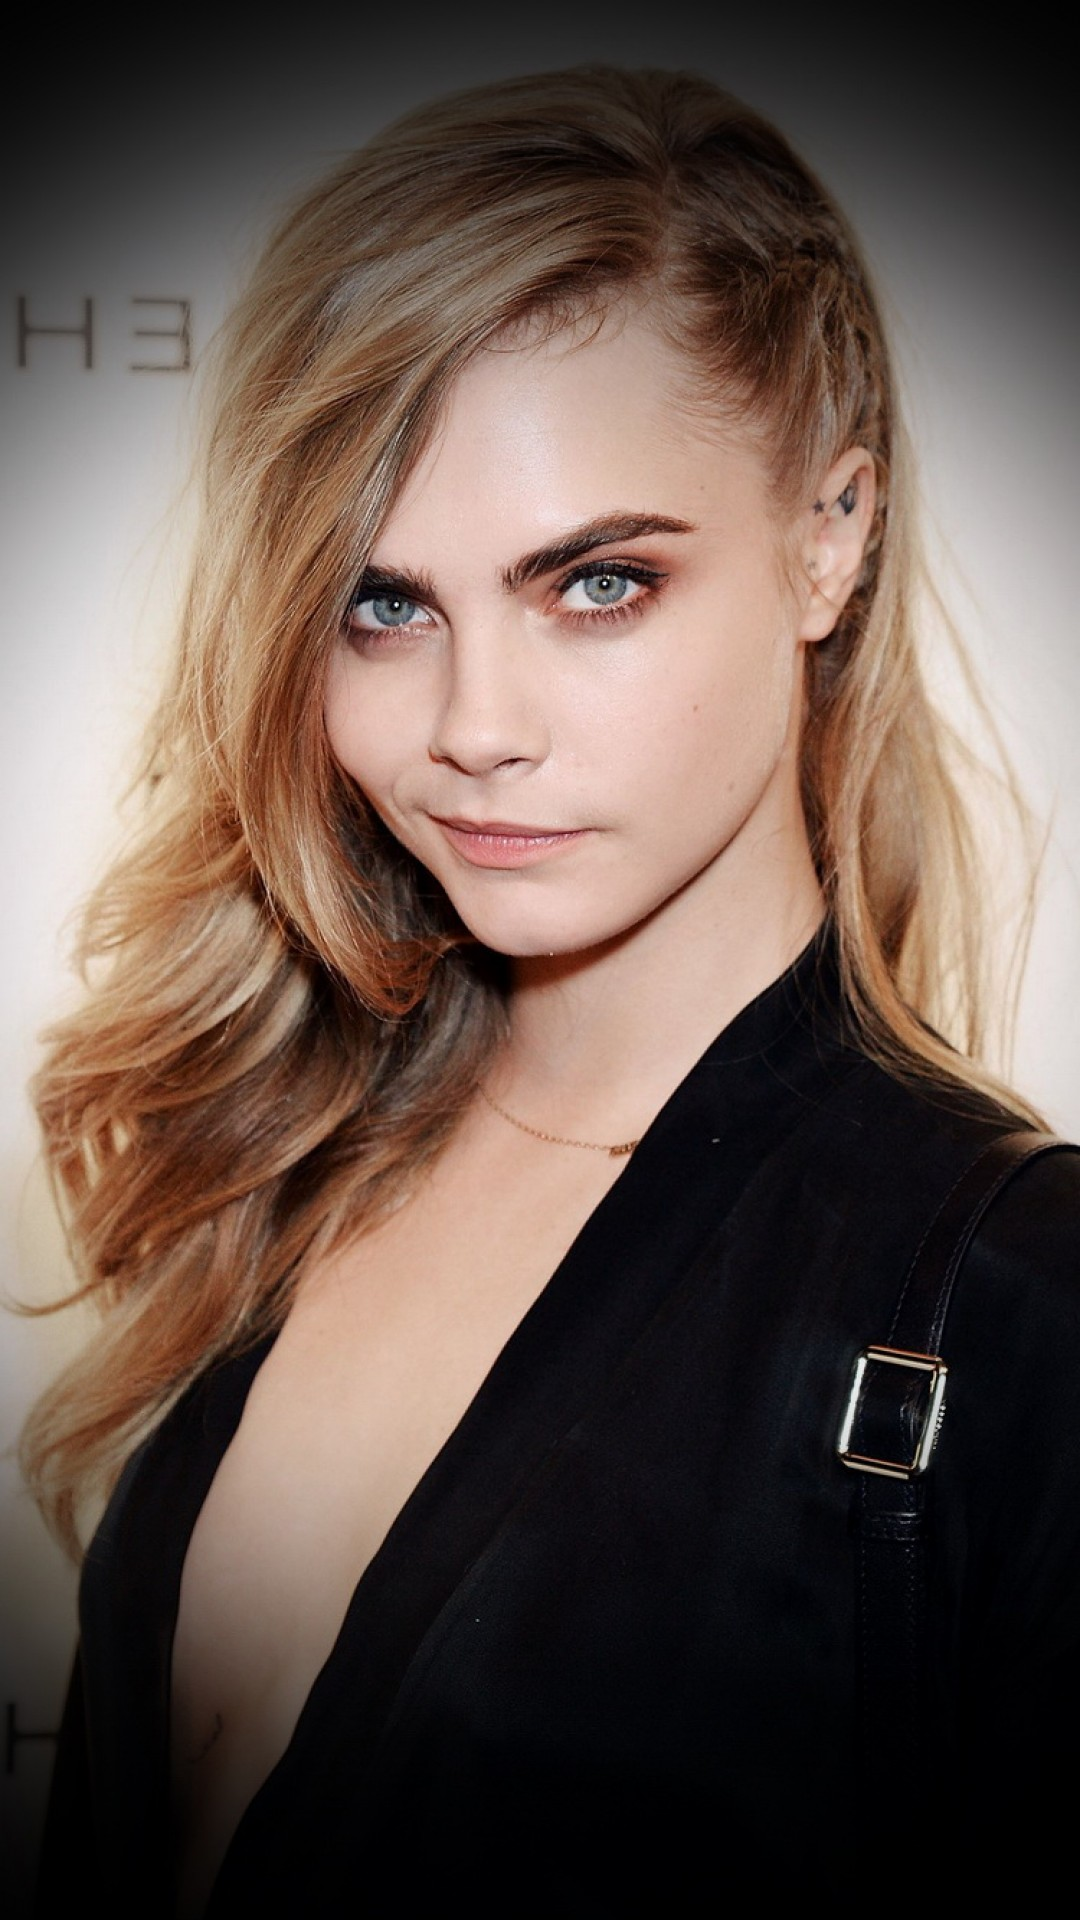 Cara Delevingne iphone screen